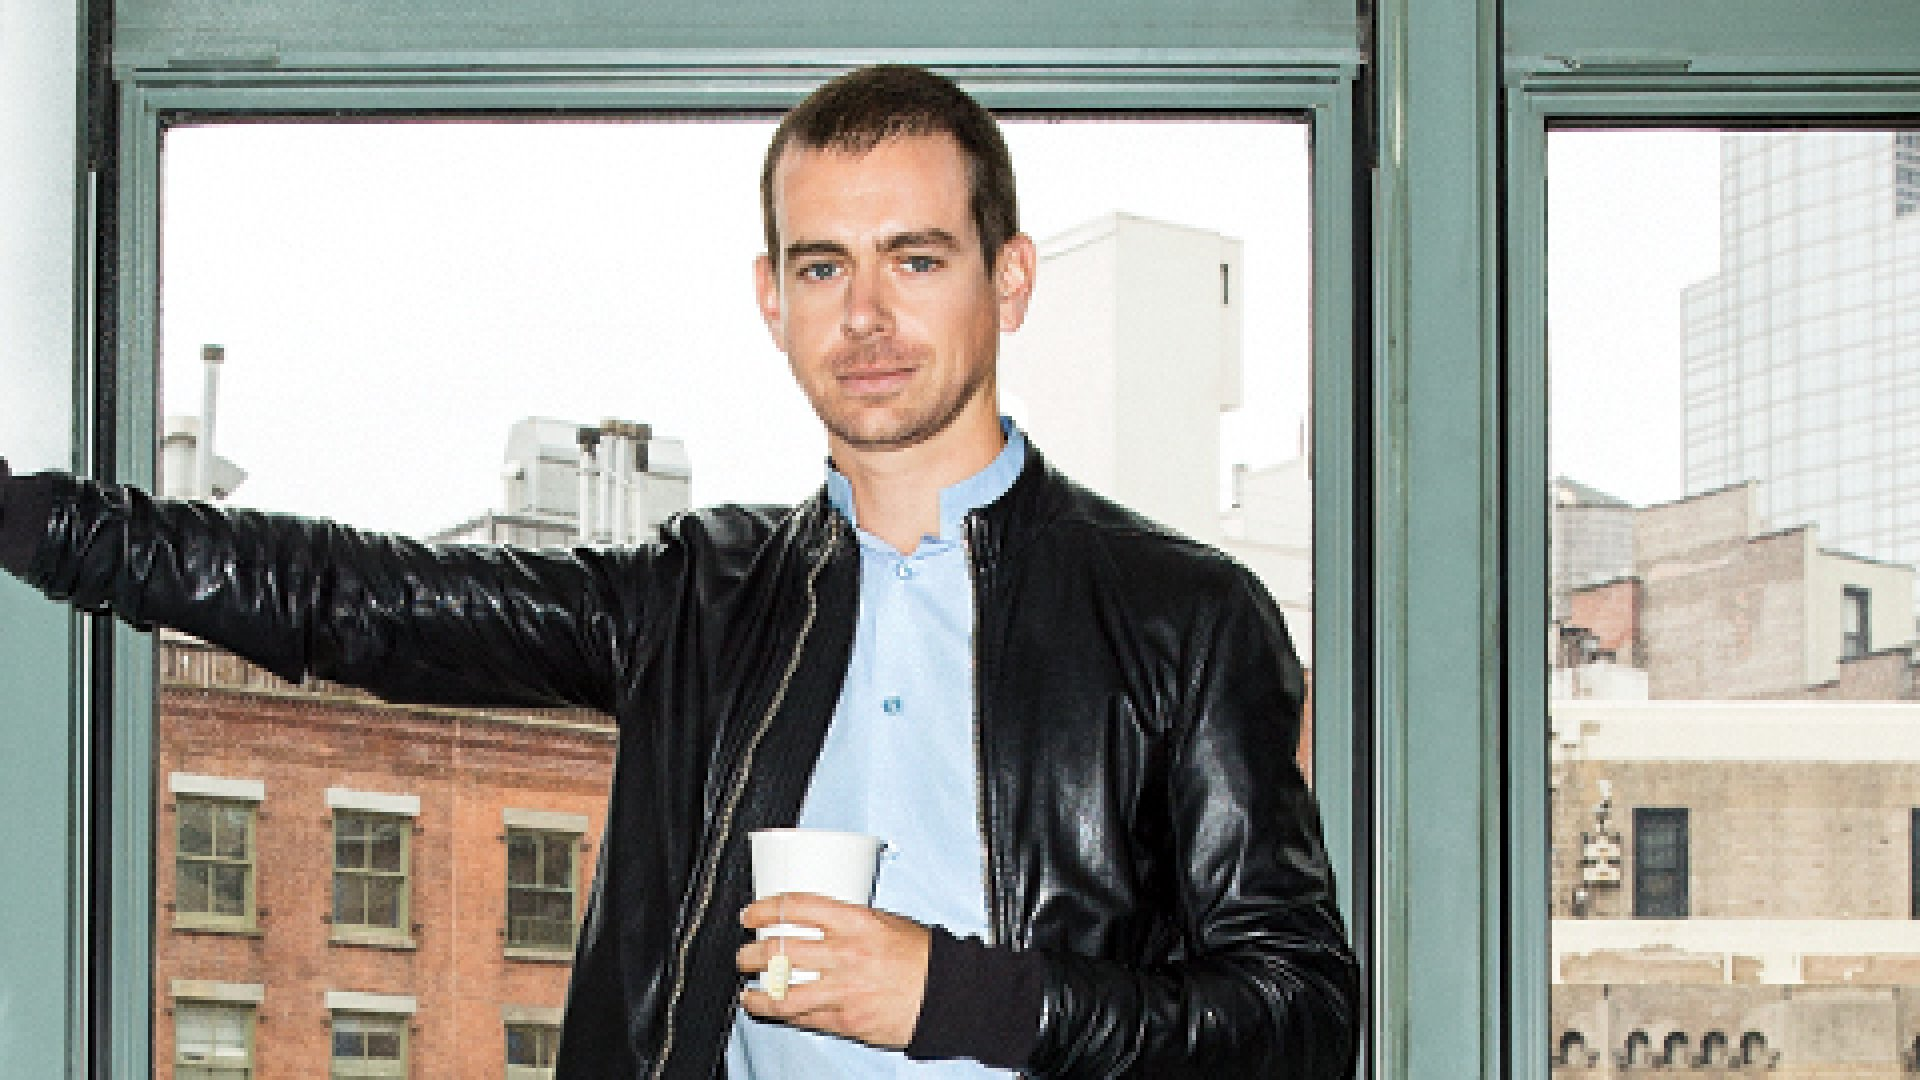 <b>BRING IT ON</b> Jack Dorsey anticipated early skepticism about Square and confronted it directly.